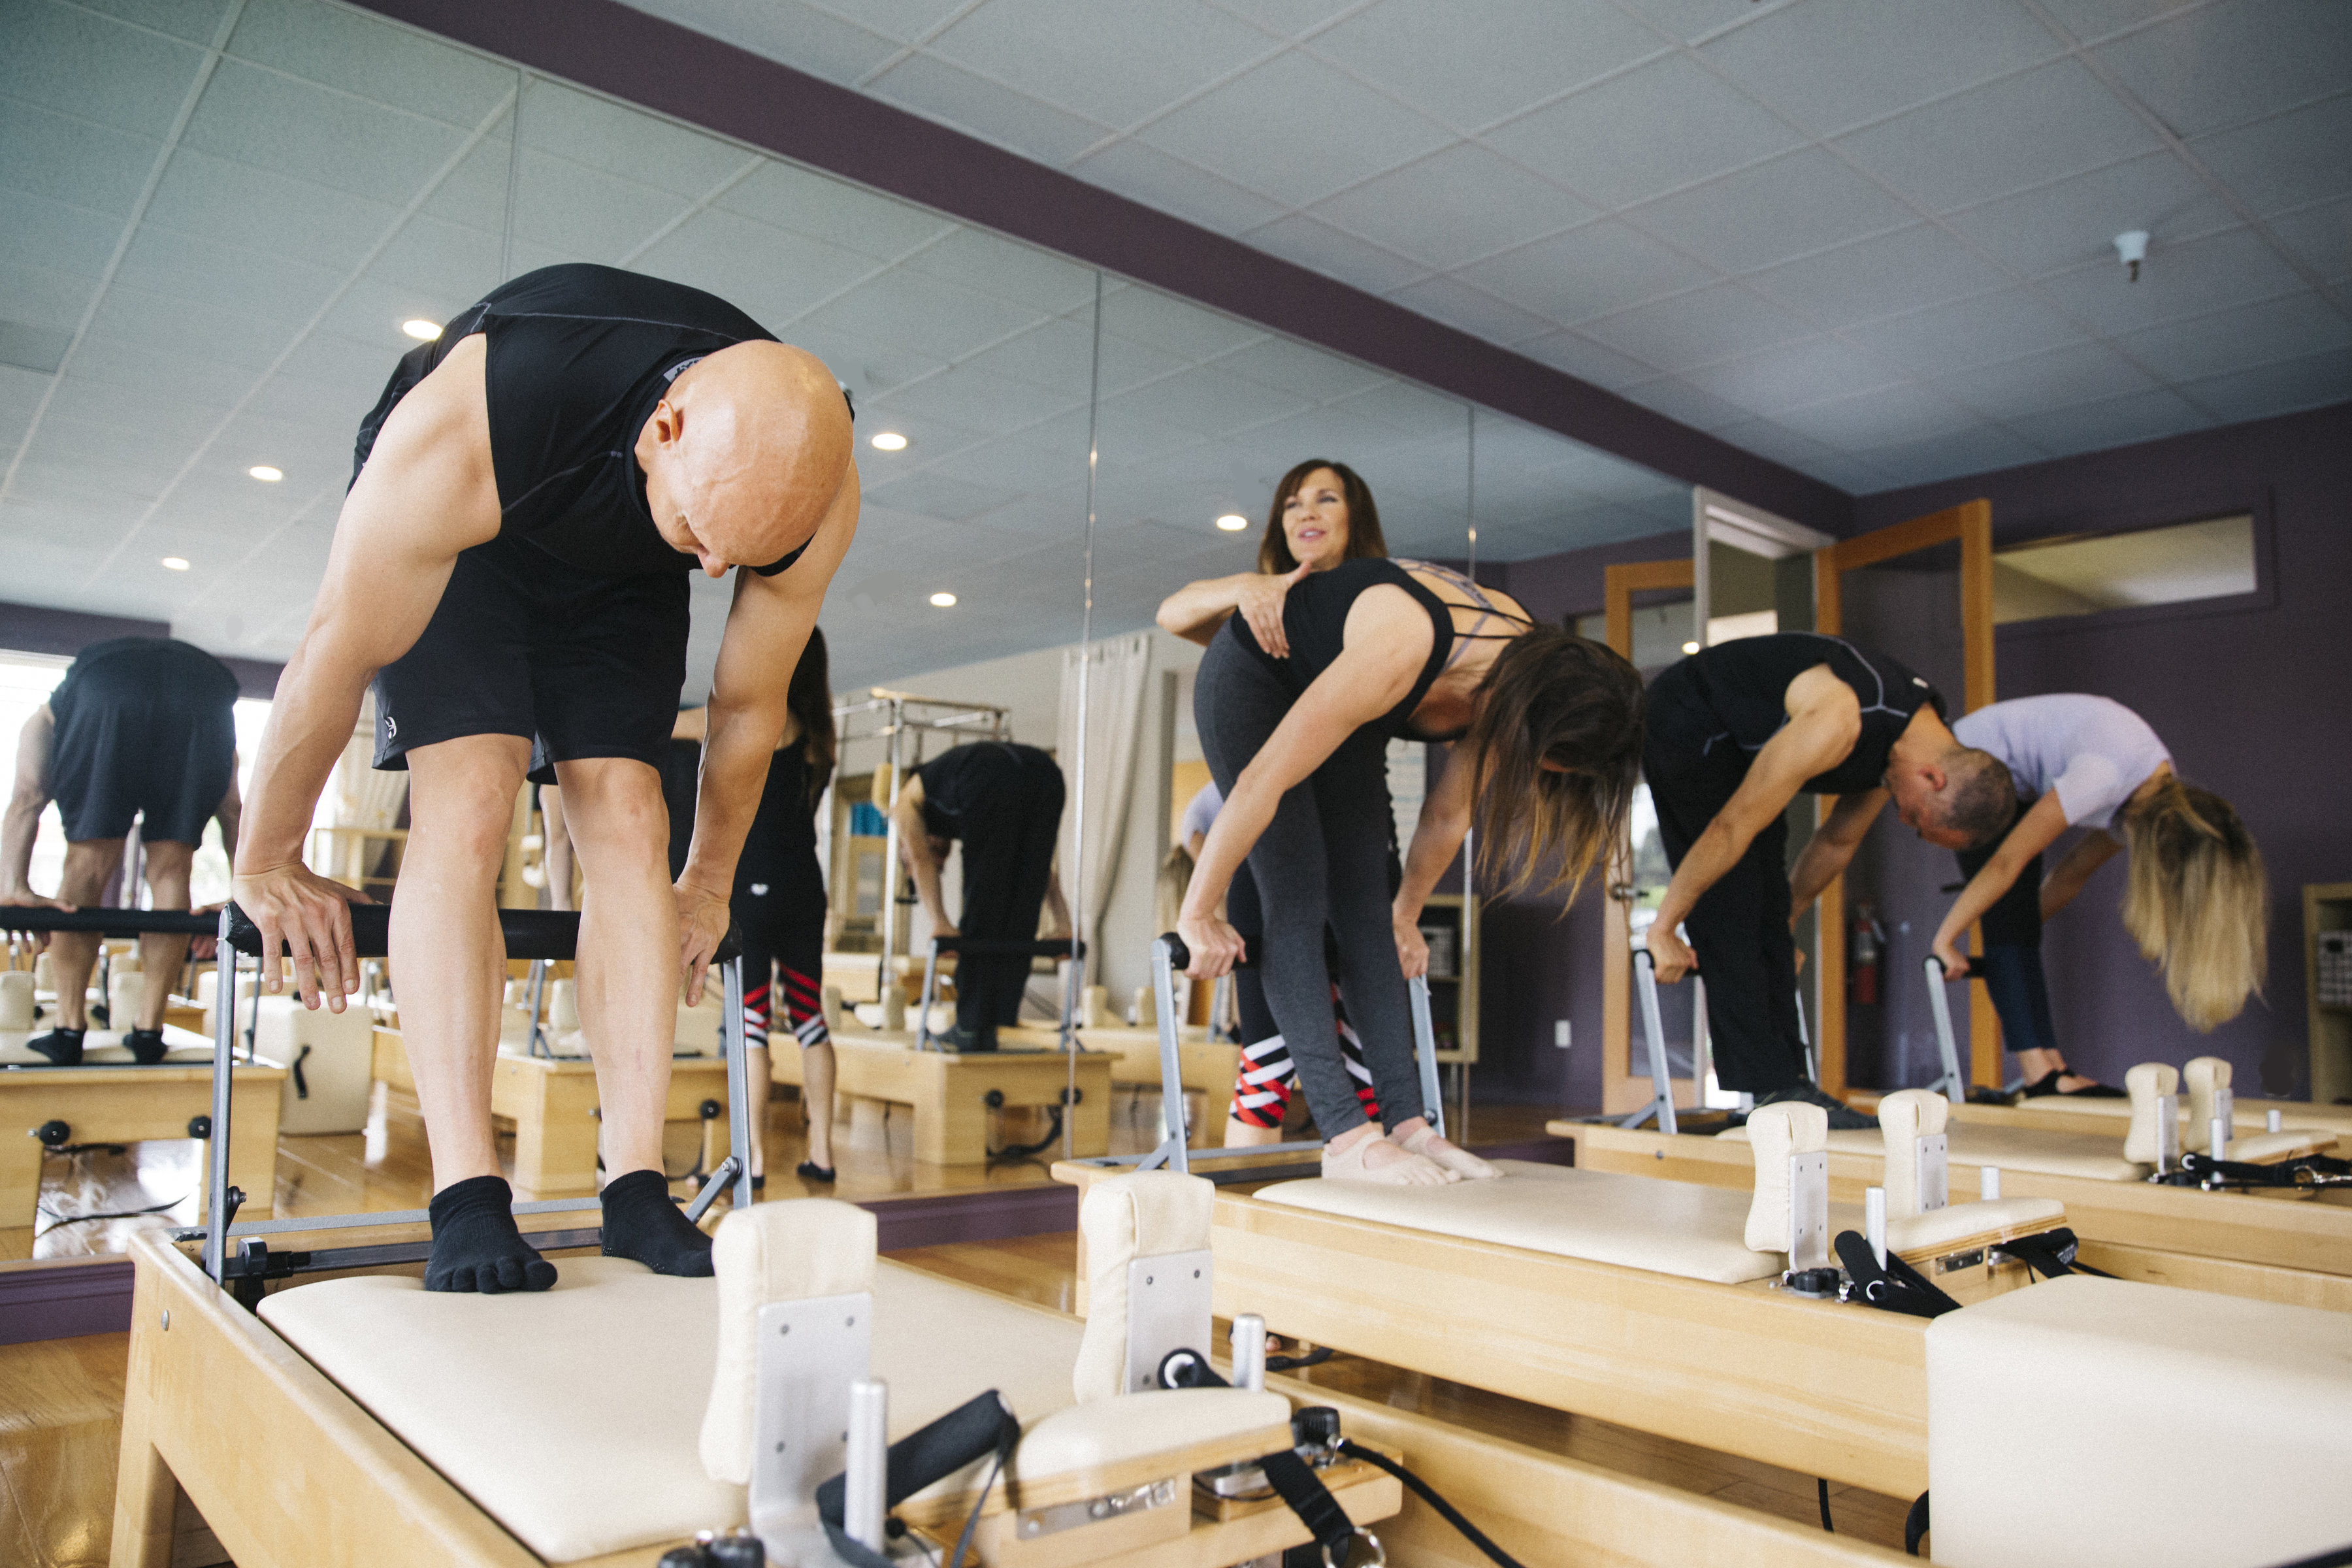 EHF Pilates Reformer classes